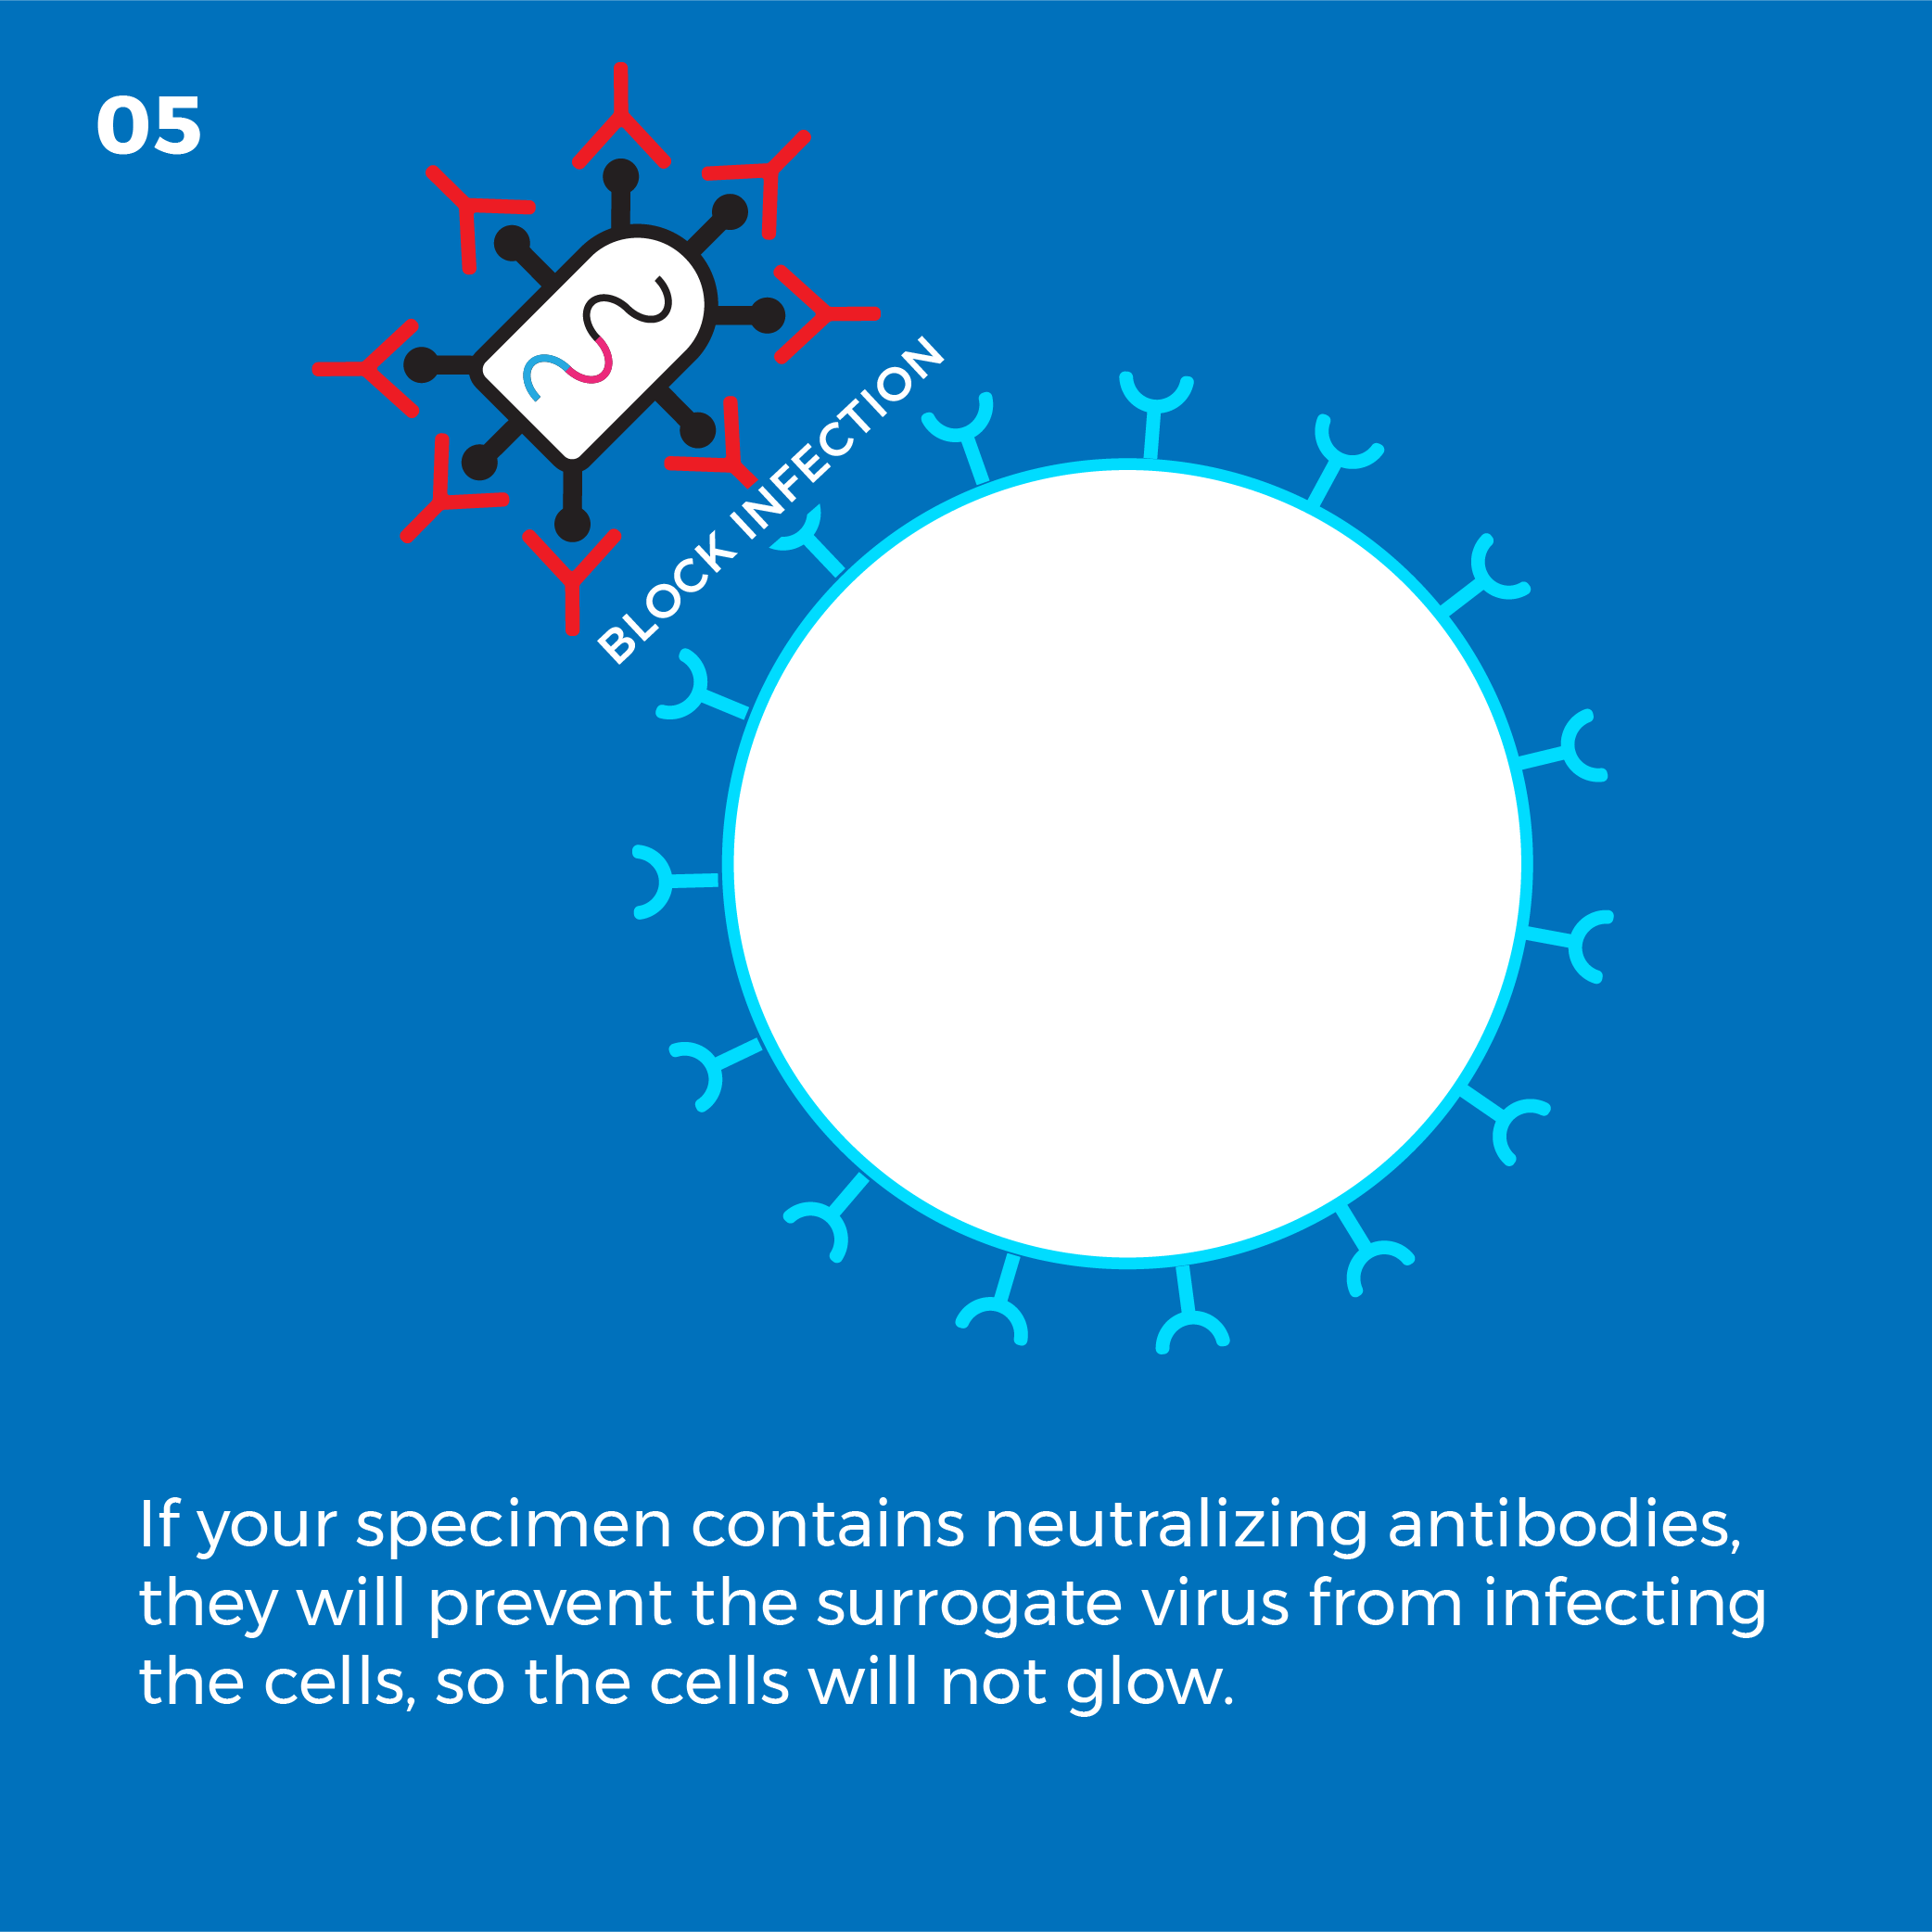 If your specimen contains neutralizing antibodies, they will prevent the surrogate virus from infecting the cells, so the cells will not glow.